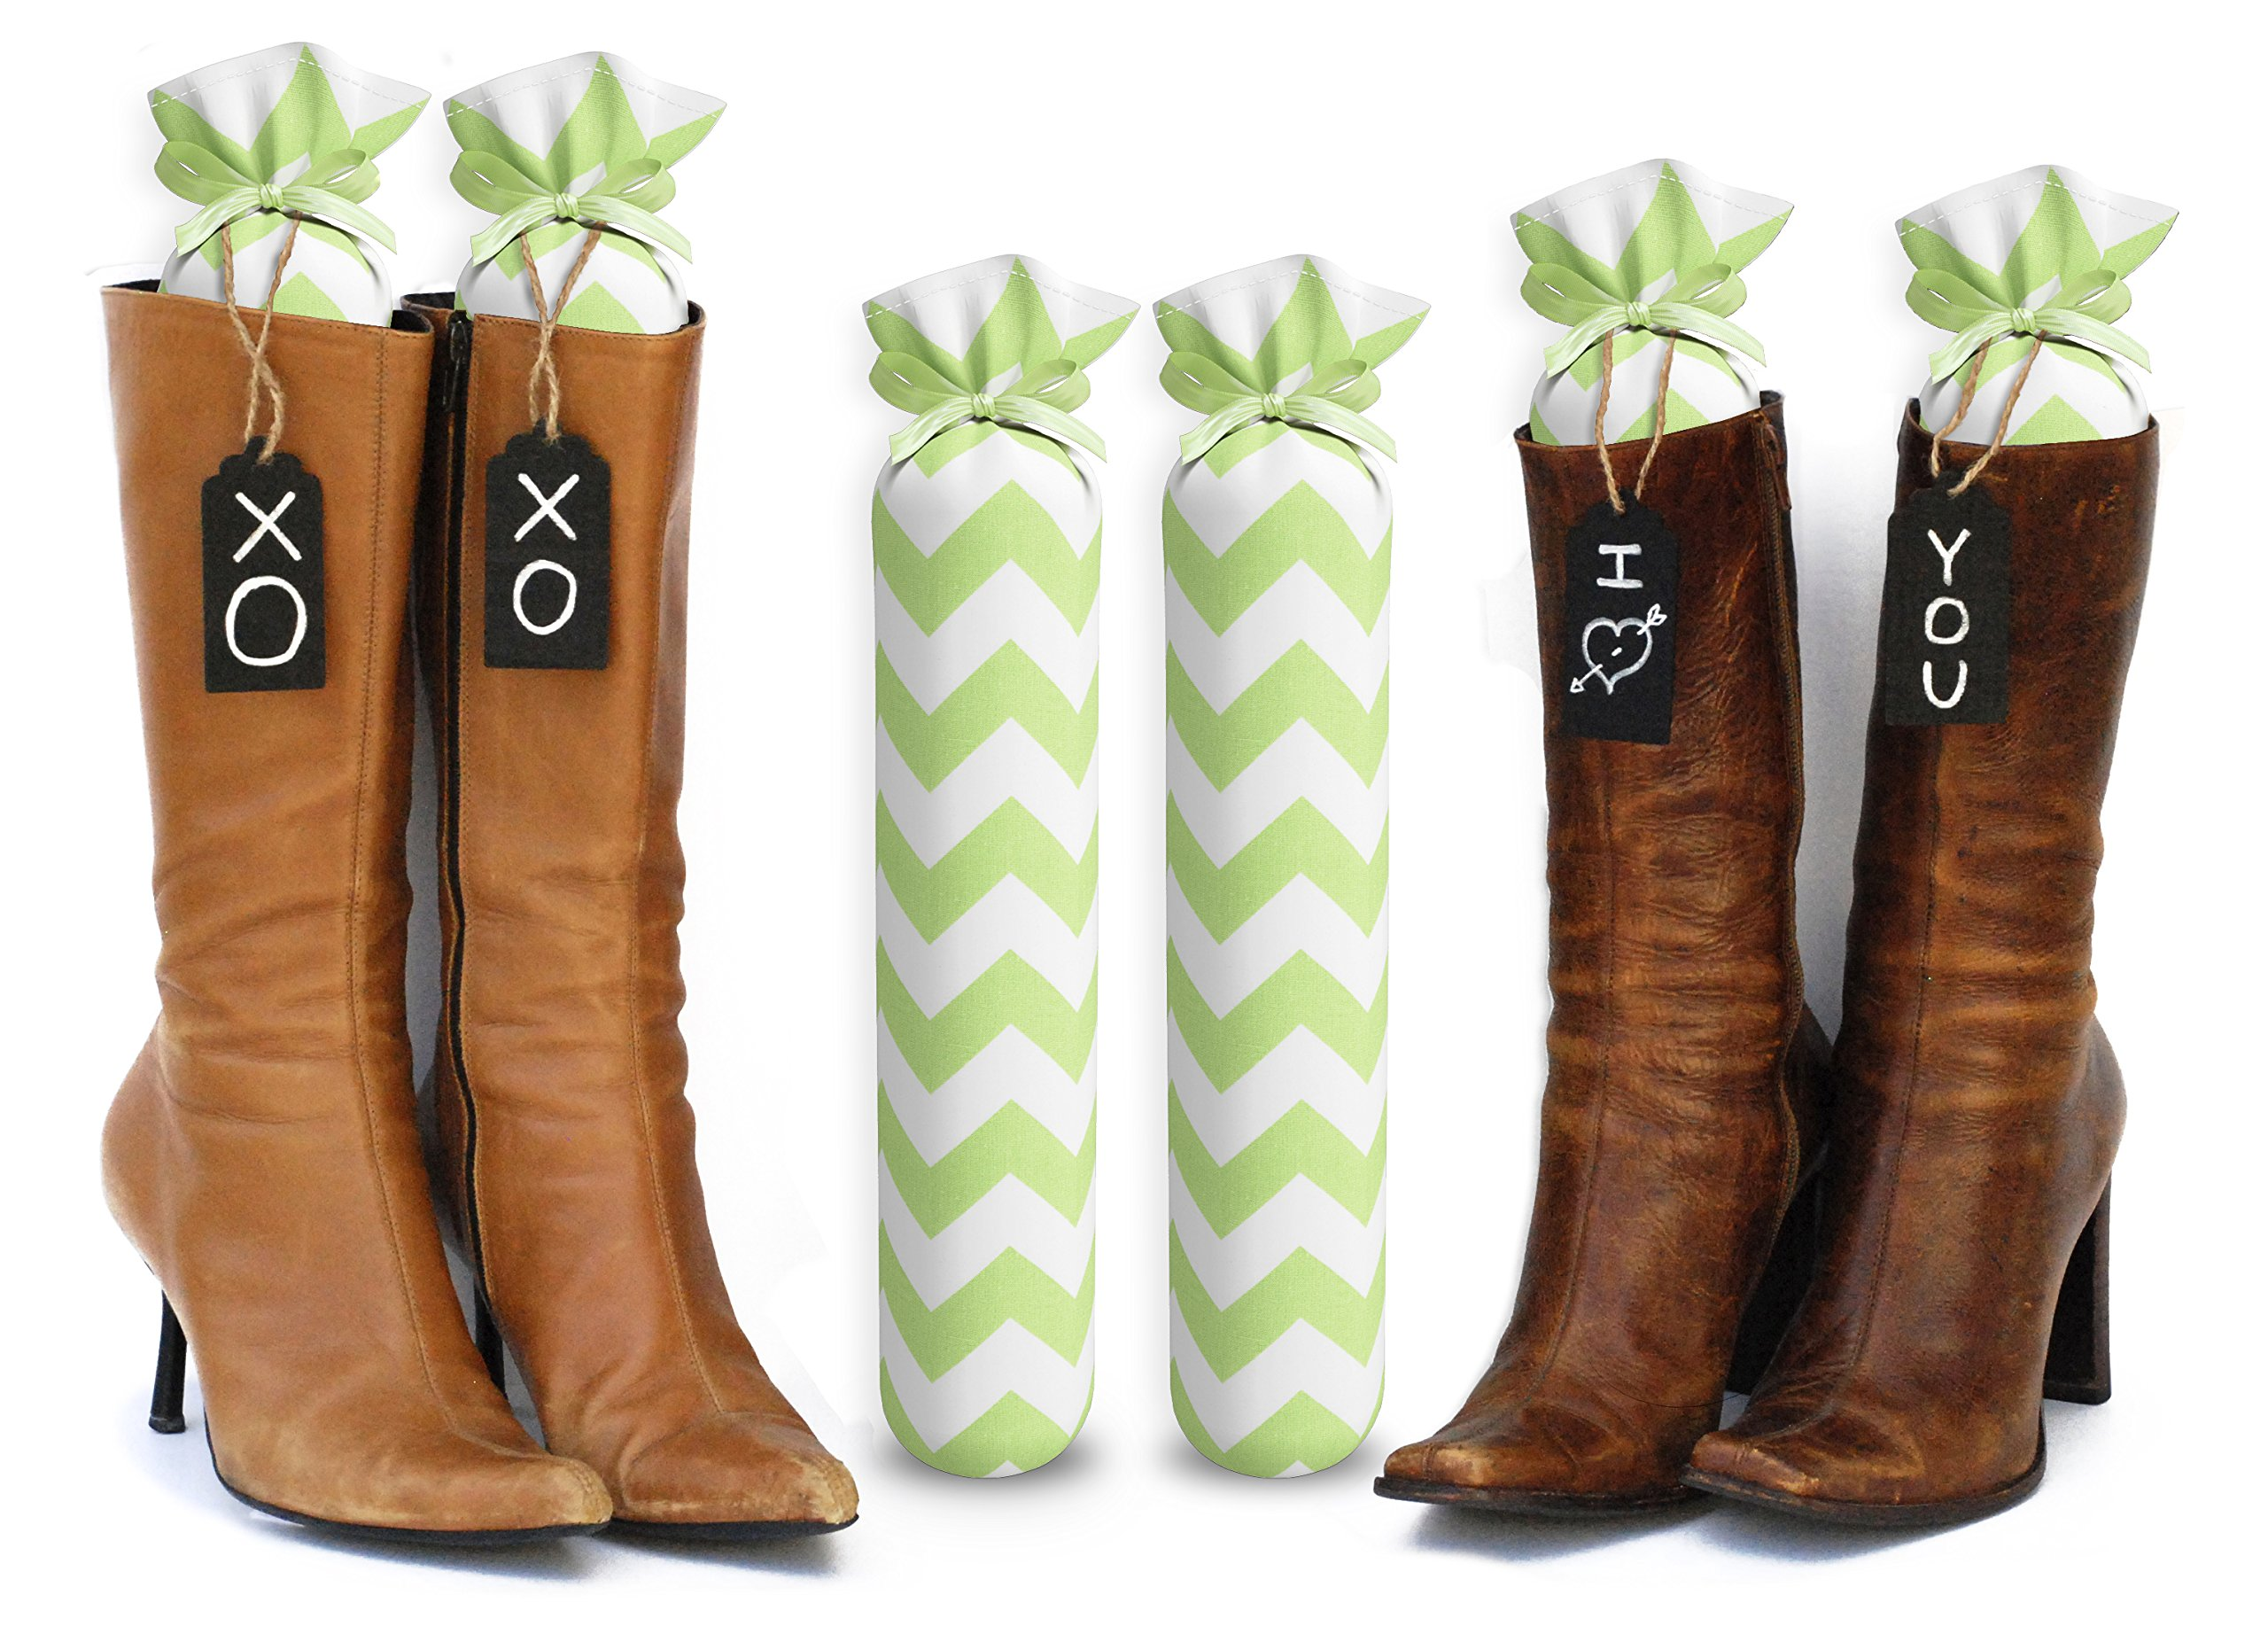 My Boot Trees Boot Shaper Stands for Closet Organization. Many Patterns to Choose from. 1 Pair (Lime Green Chevron).